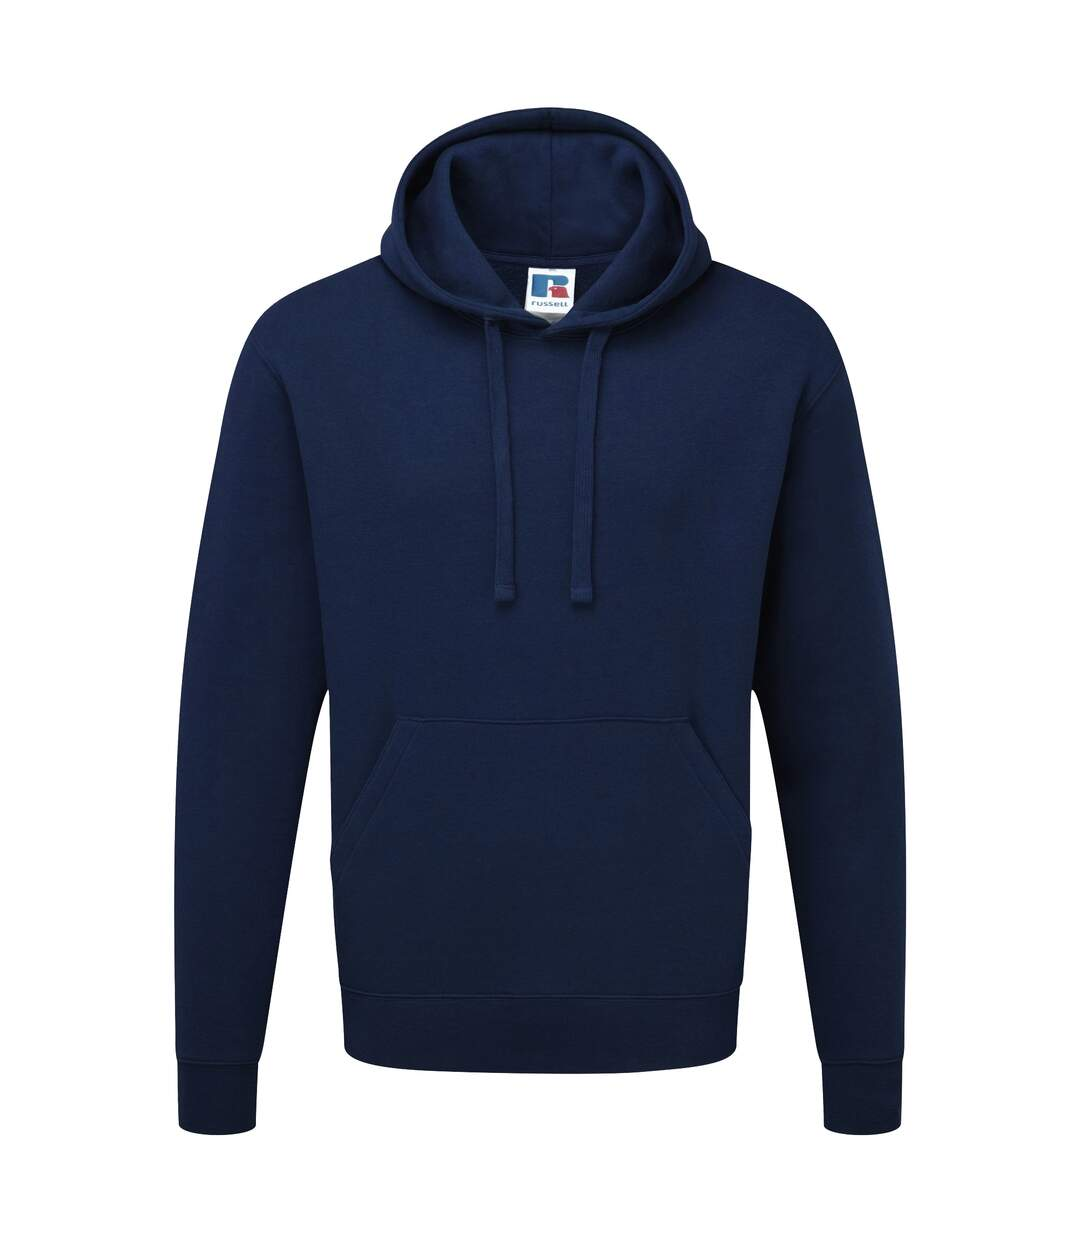 Russell Mens Authentic Hooded Sweatshirt / Hoodie (Bright Royal) - UTBC1498